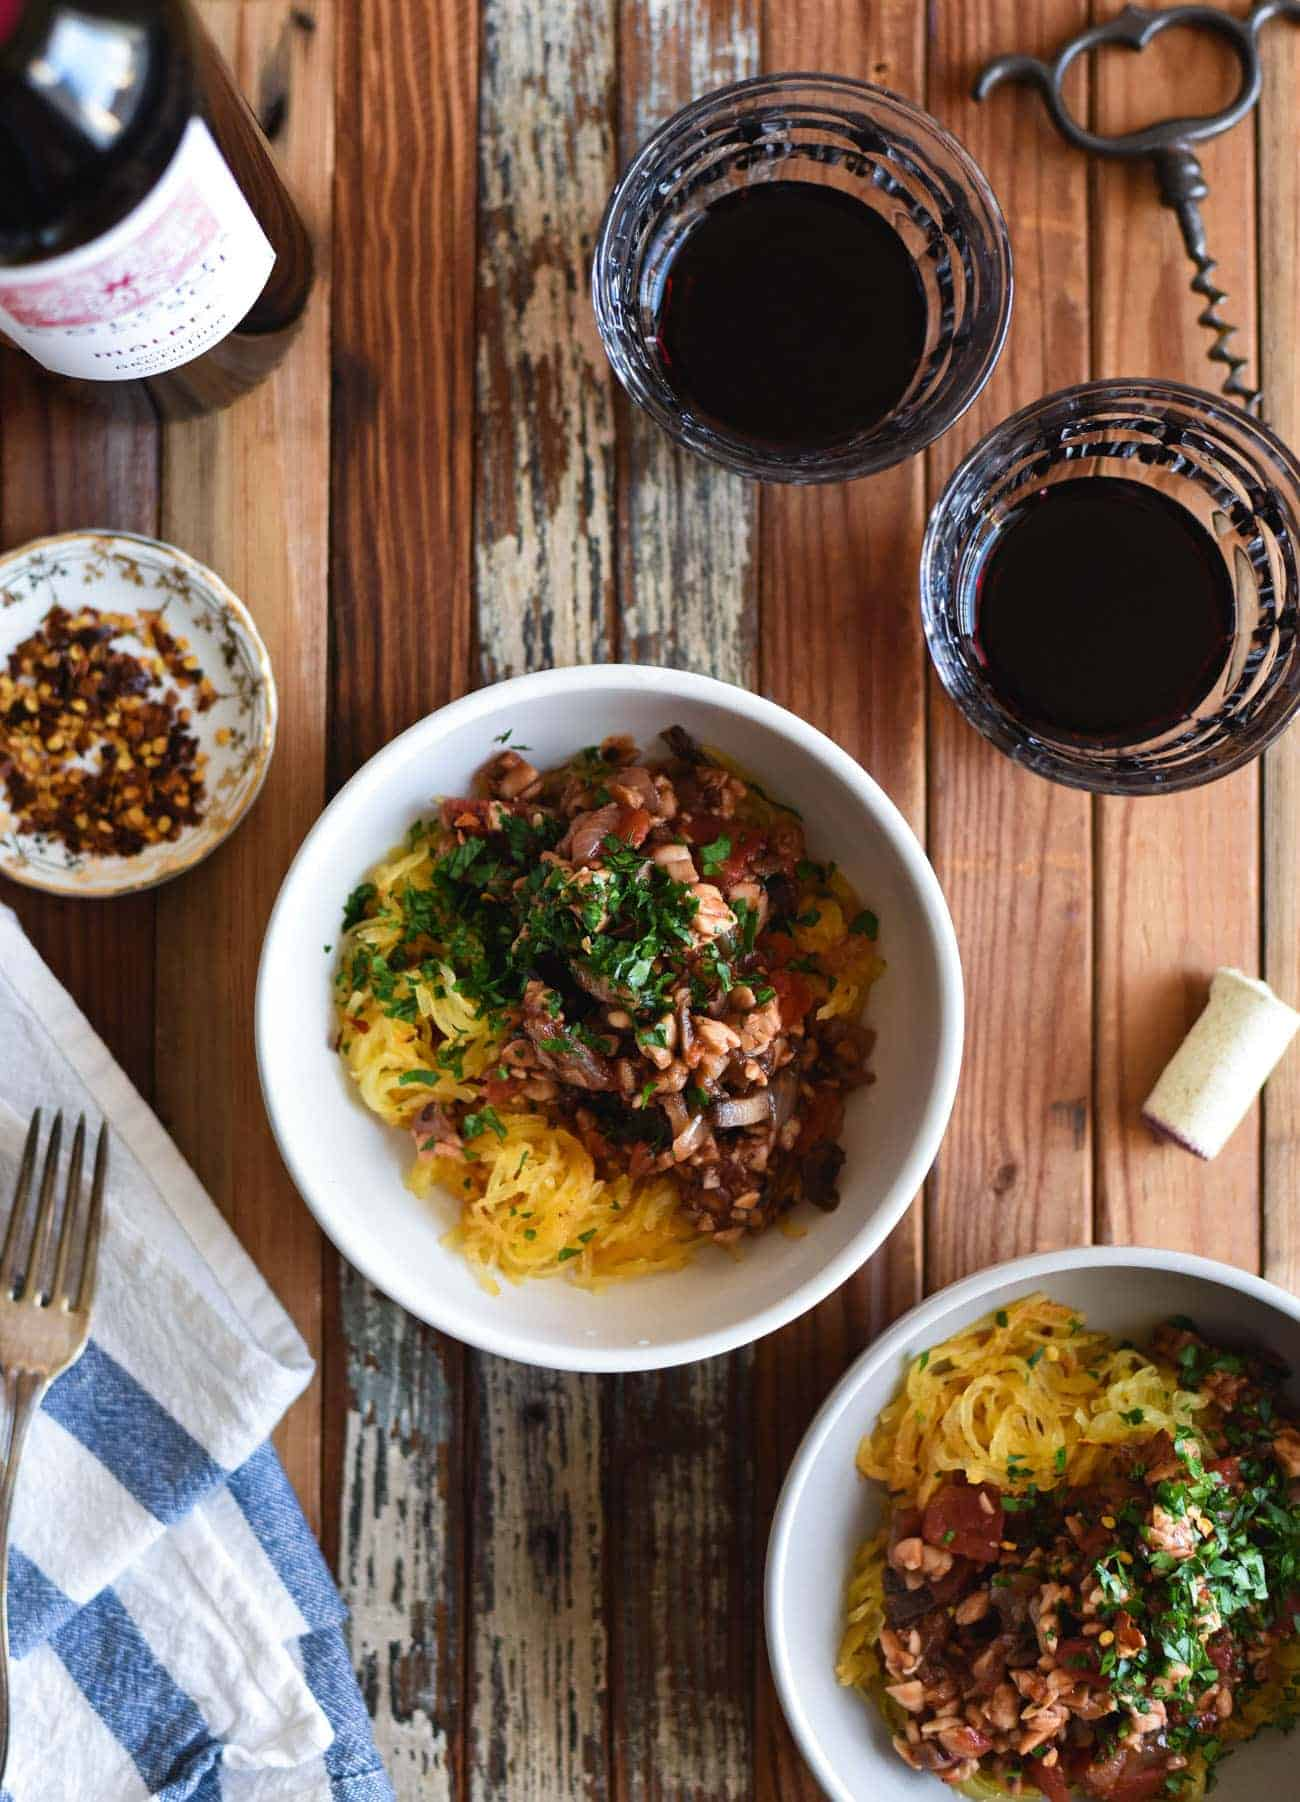 Two bowls of Tempeh Bolognese with Roasted Spaghetti Squash next to glasses of red wine